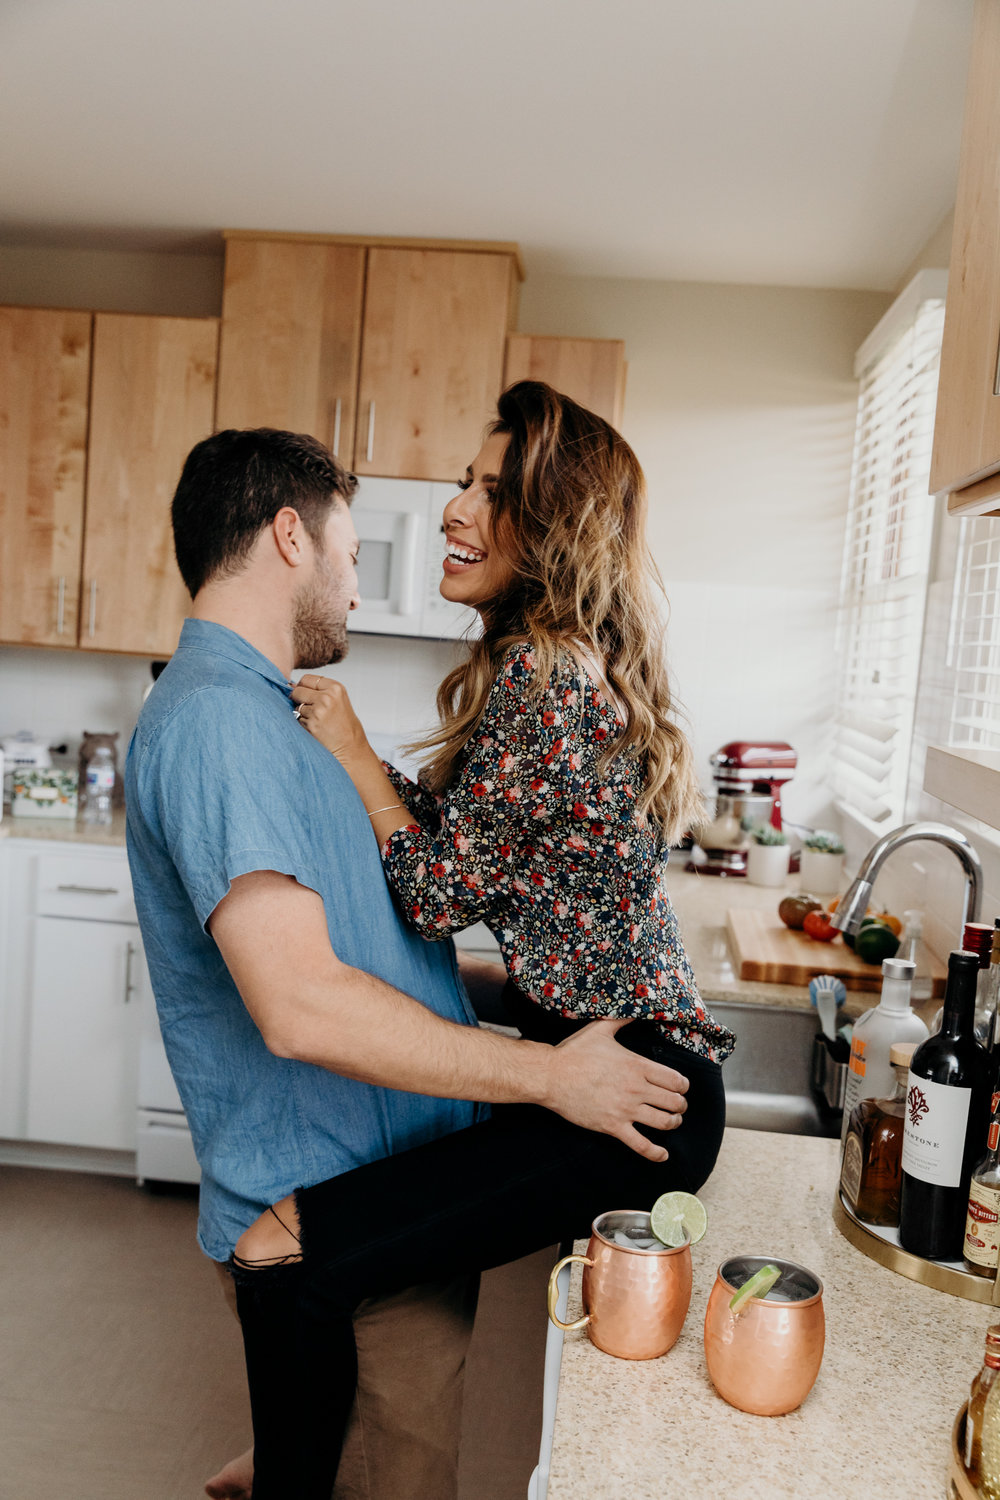 Everyday Pursuits Andy + Ashley: couples kitchen photoshoot